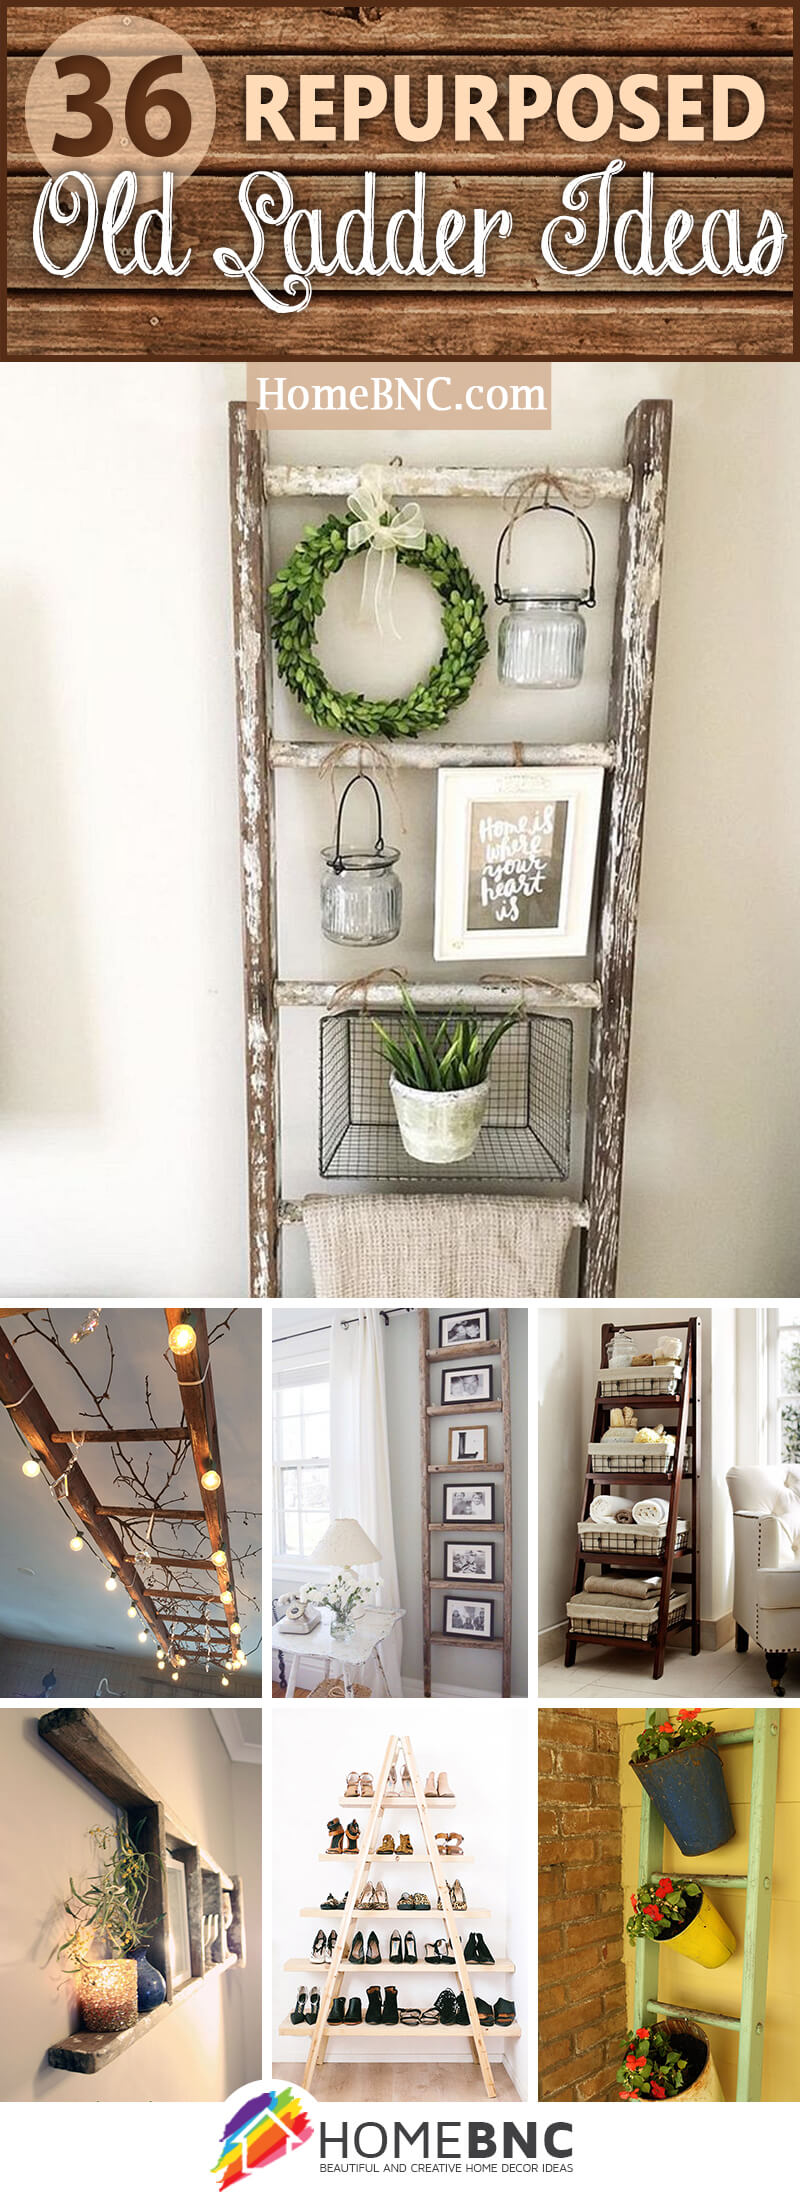 https://homebnc.com/homeimg/2017/11/repurposed-old-ladder-ideas-pinterest-share-homebnc.jpg